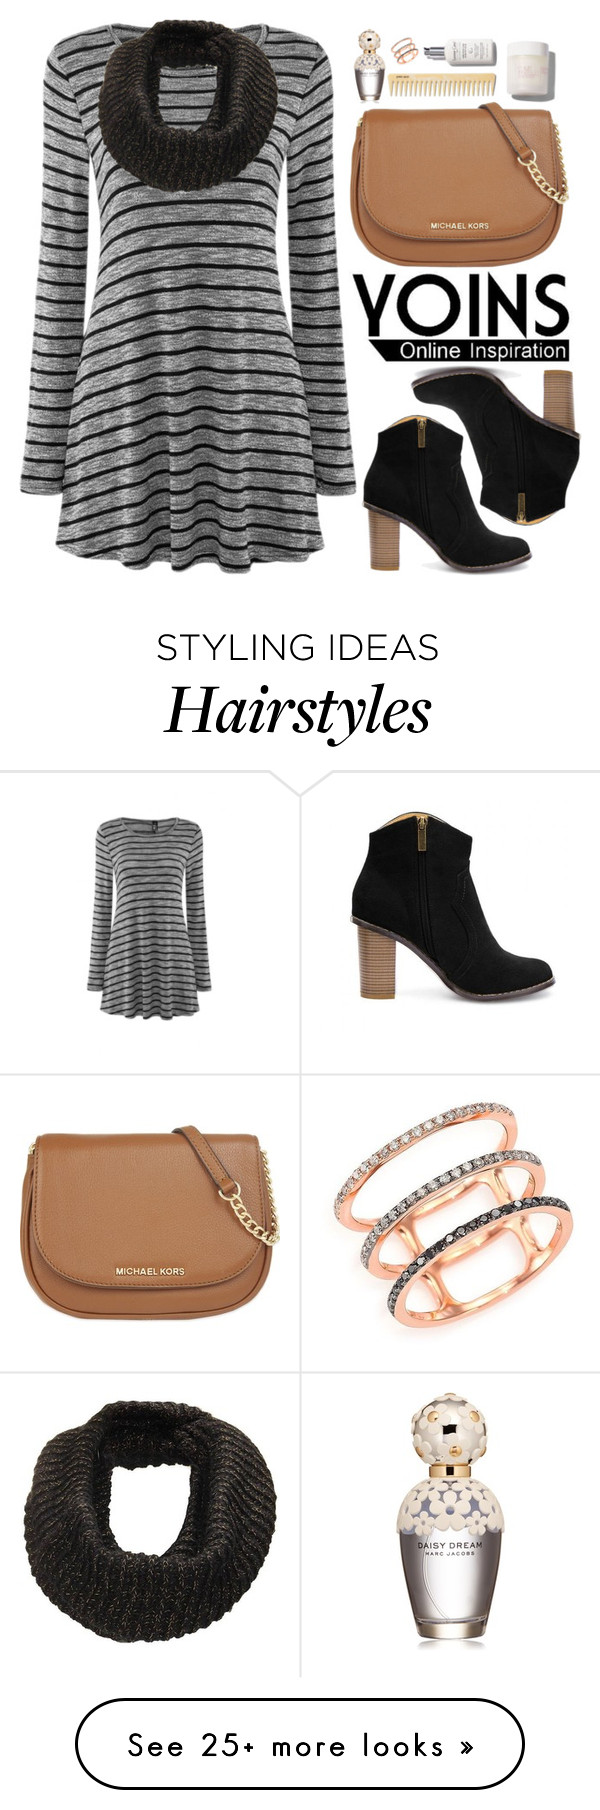 """""""Yoins.com"""" by oshint on Polyvore featuring MICHAEL Michael Kors, EF Collection, Marc Jacobs and yoins"""